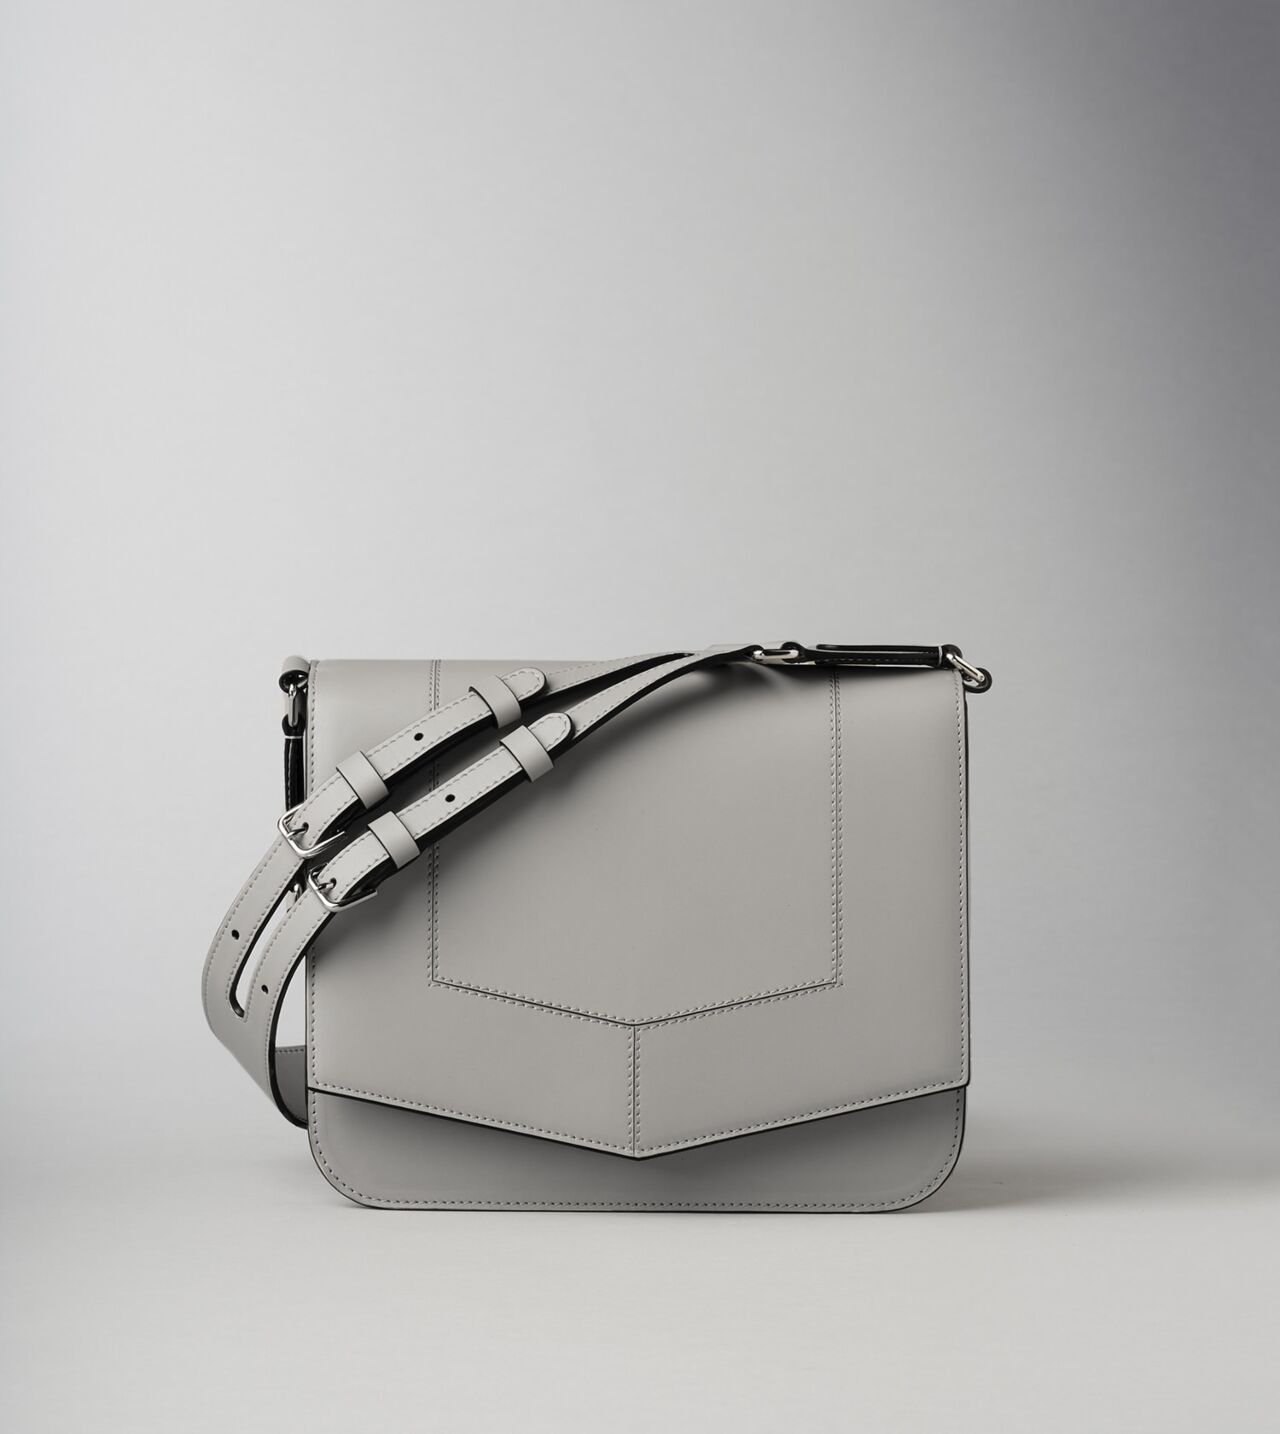 Picture of Byredo Circuit medium bag in Light grey leather and silver hardware